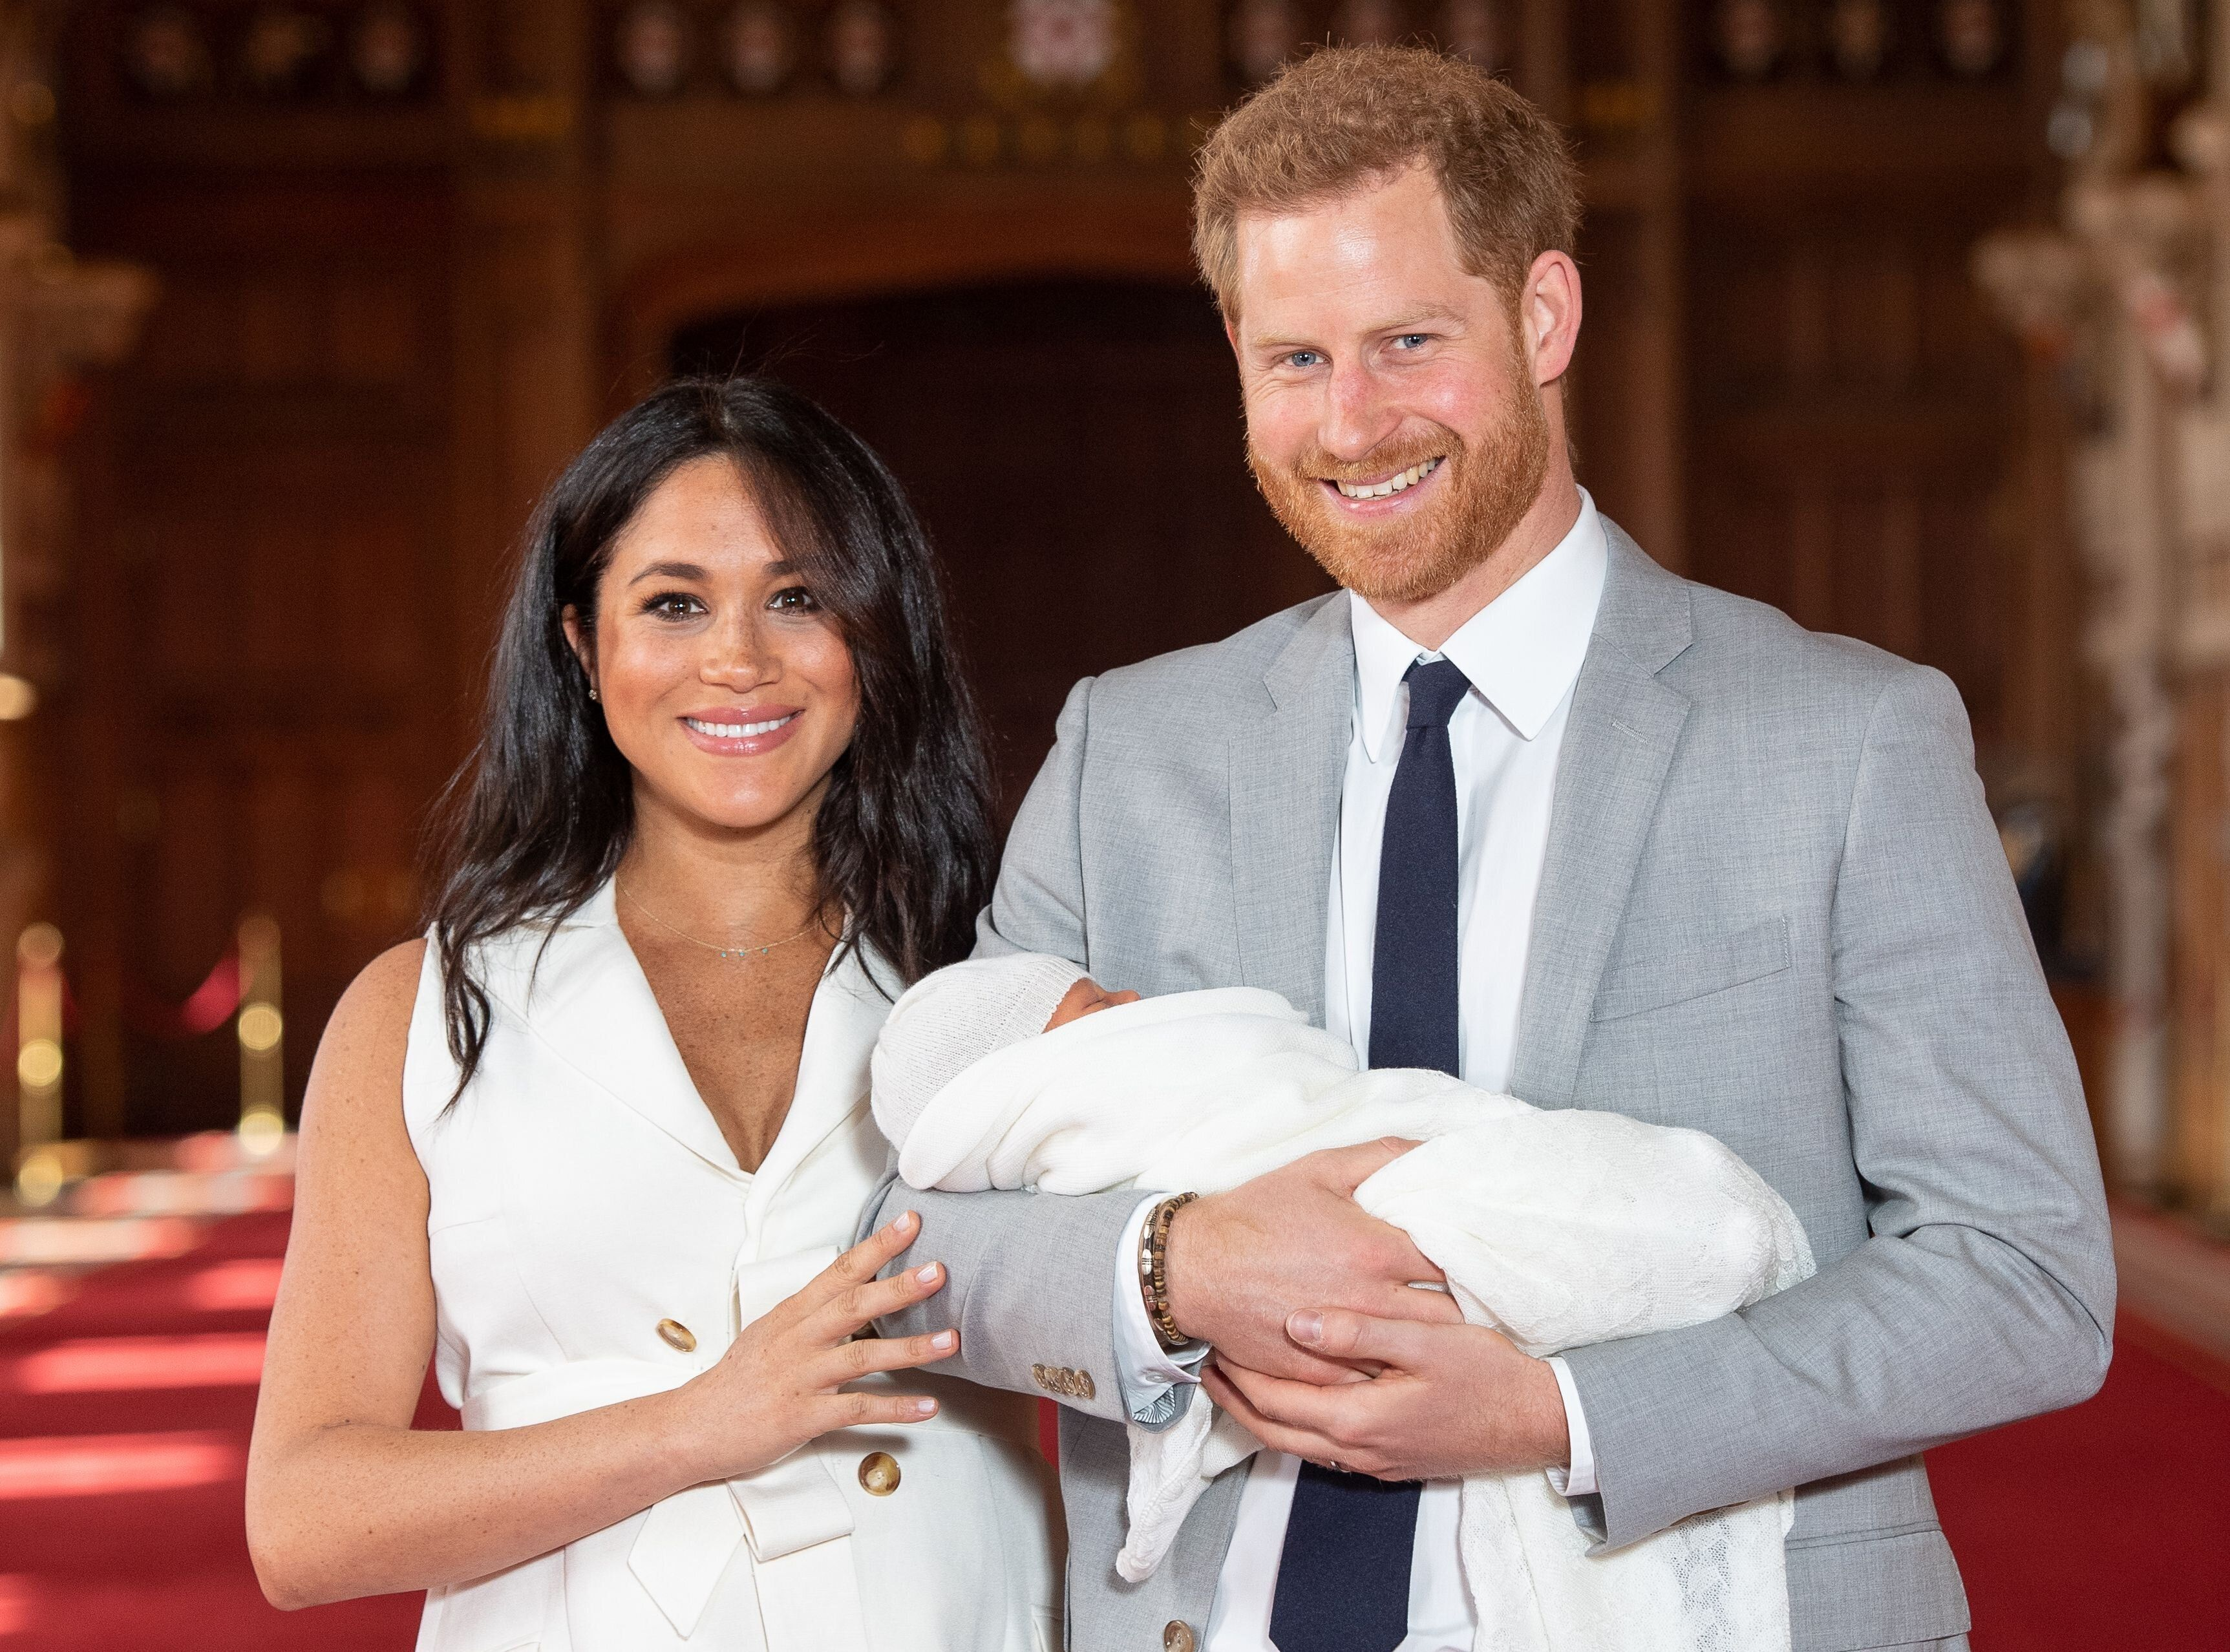 The Duke and Duchess of Sussex appeared with baby Archie Harrison on Wednesday.